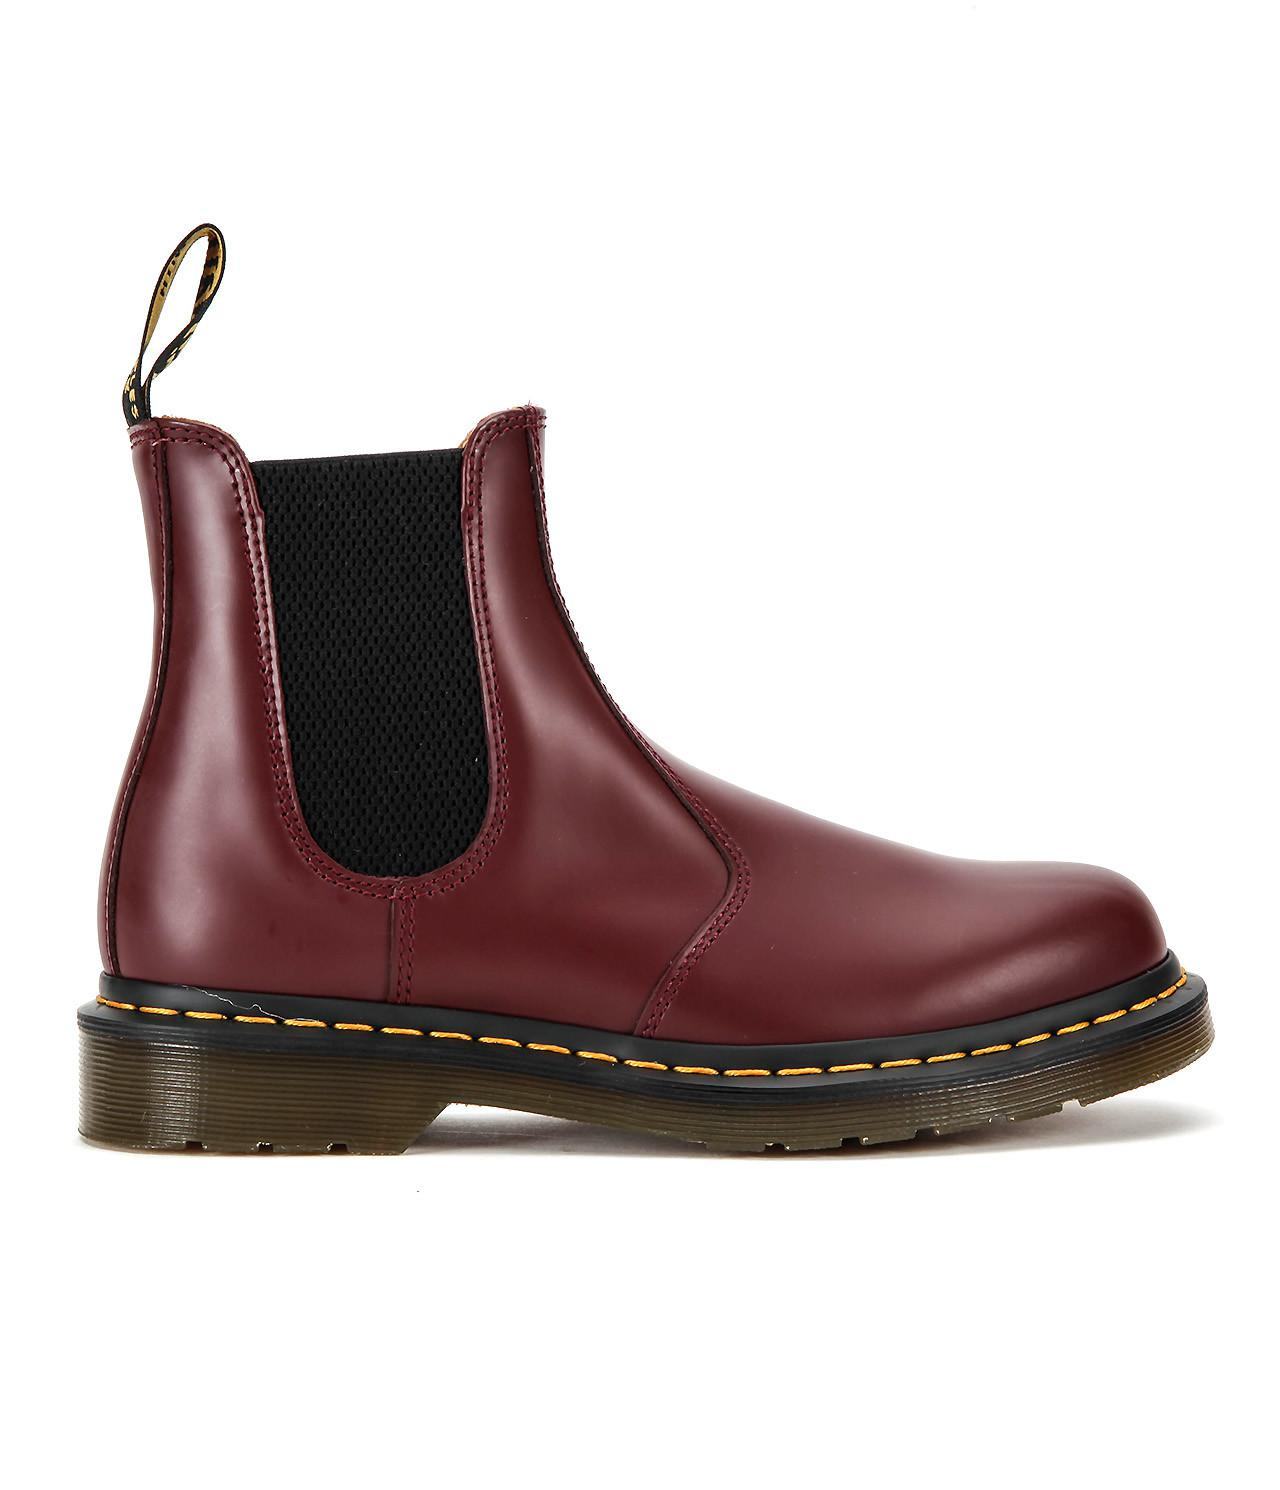 Dr. Martens 2976 - Classic ankle boots - cherry red phSRWWv